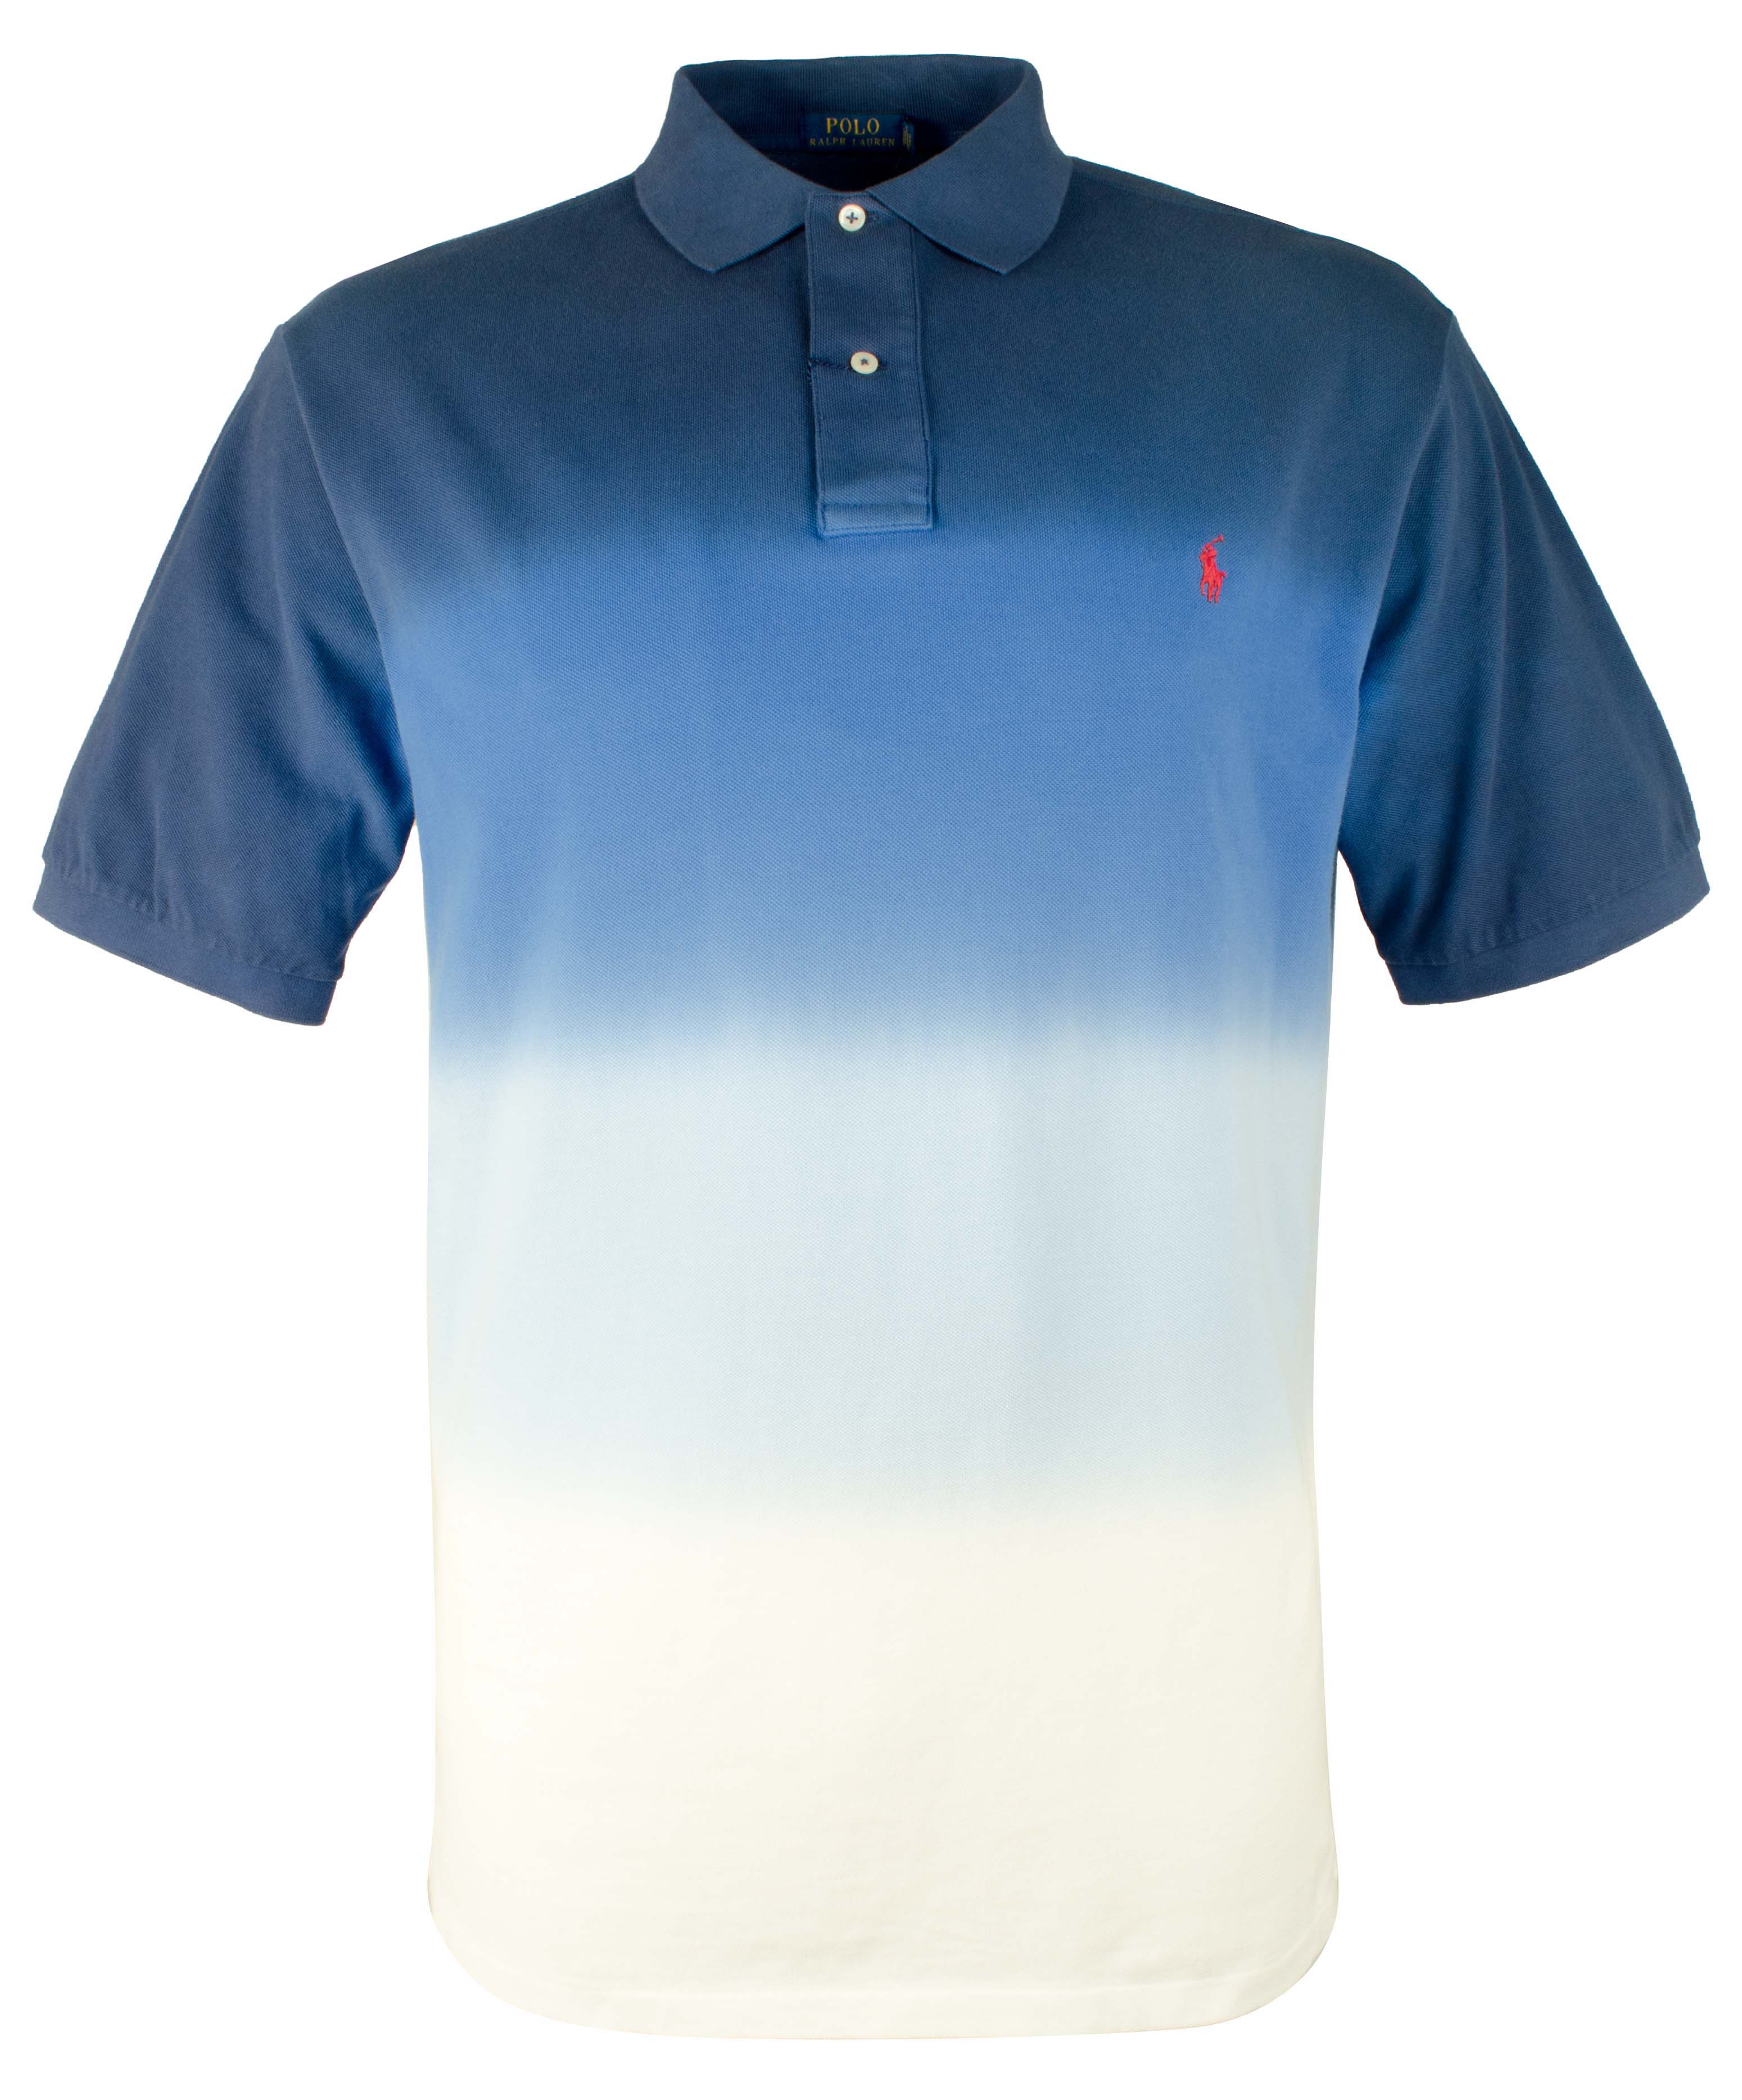 1a7c9296bc3 Polo Ralph Lauren Men s Big   Tall Dip Dyed Classic Fit Mesh Polo Shirt